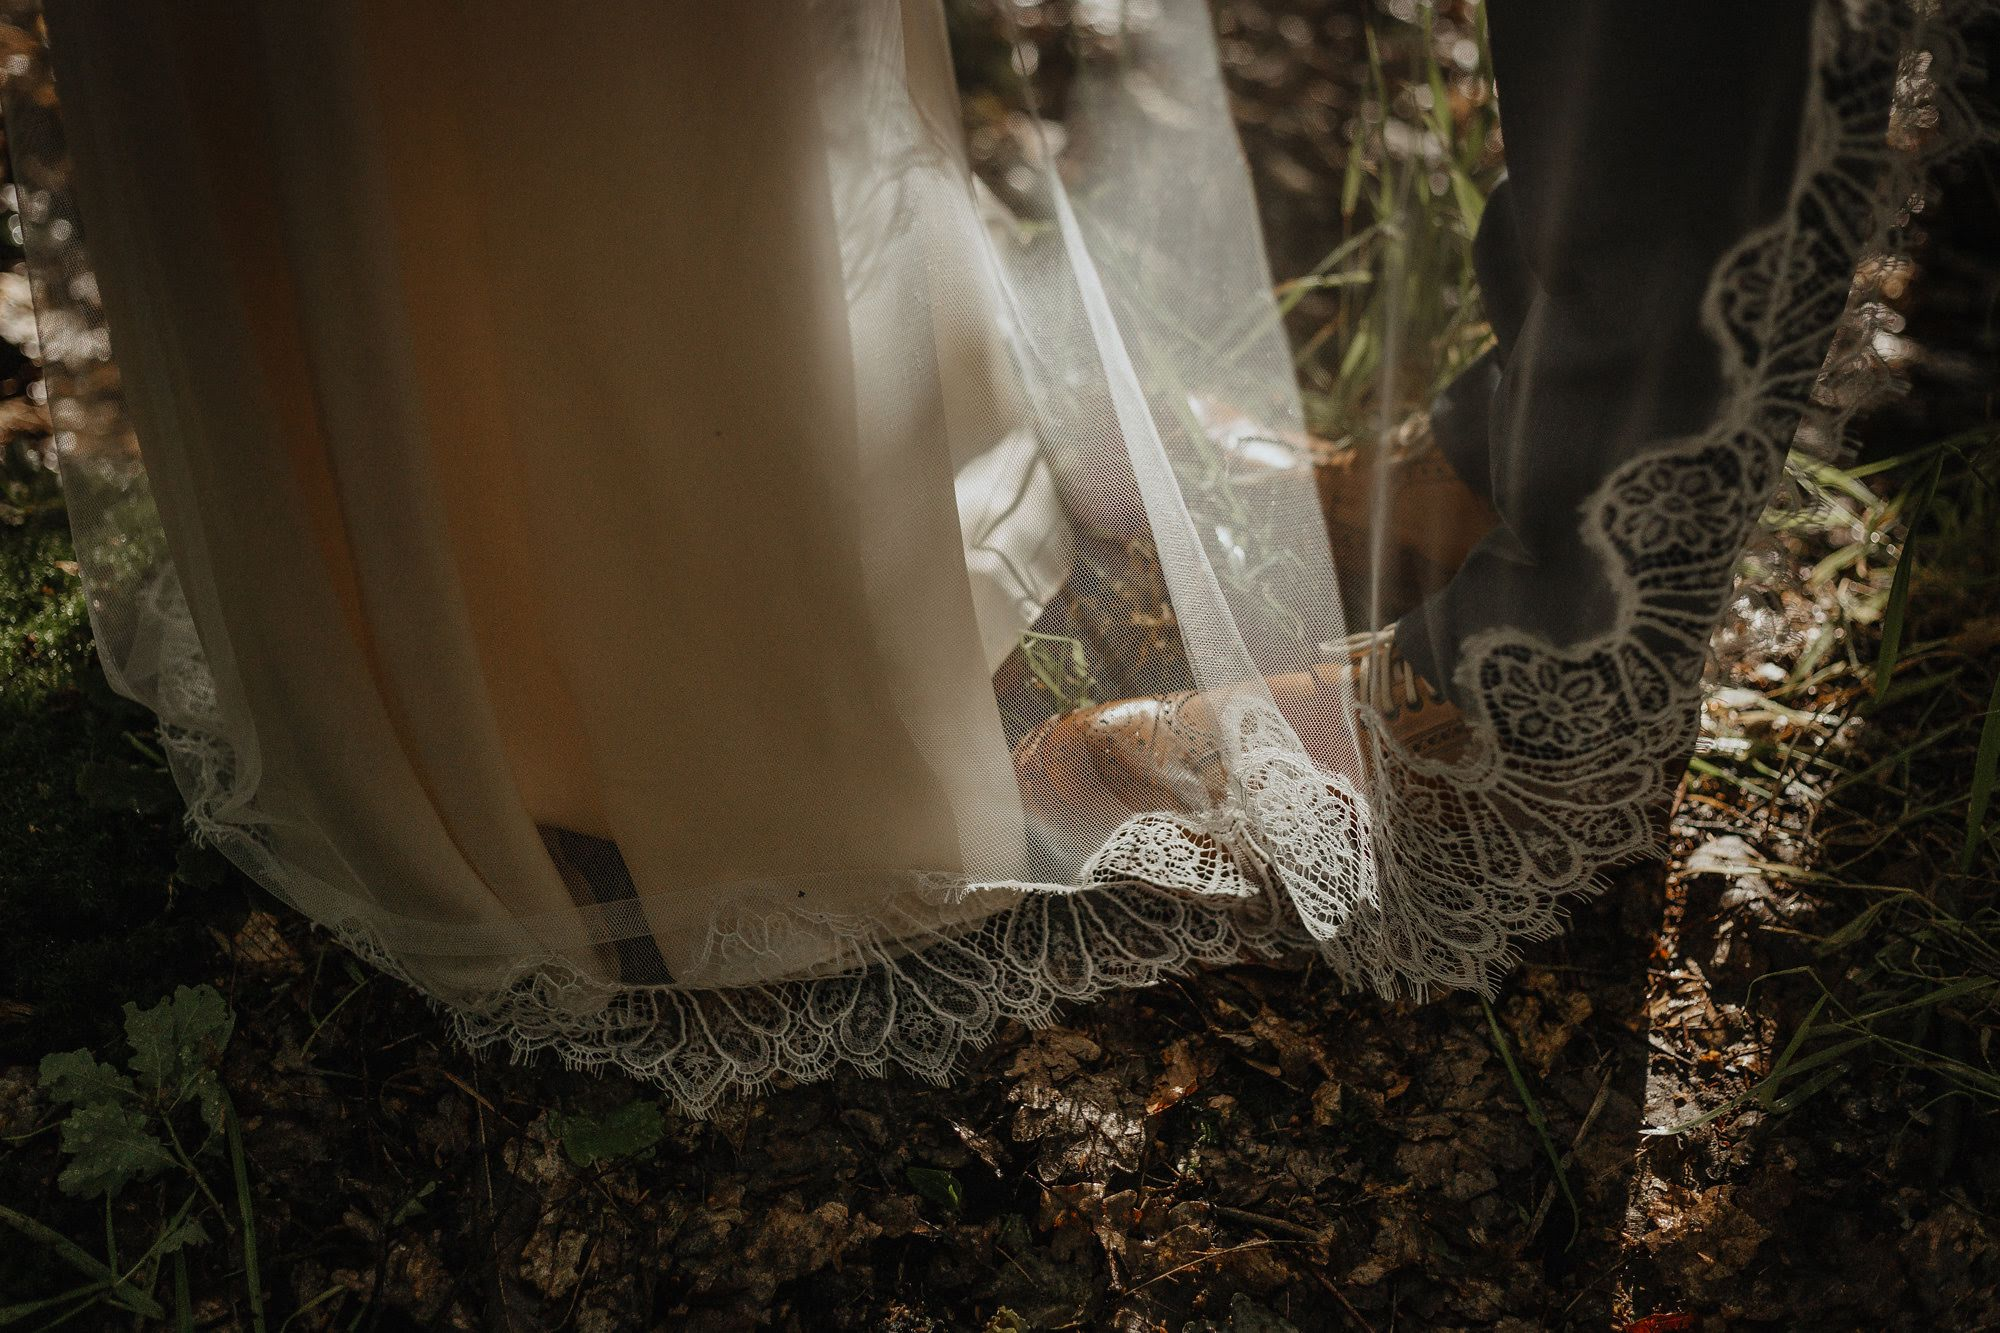 Rowanne-Laid-back-Woodland-Wedding-Sheffield-Clematis-Lace-Silk-Bohemian-Wedding-Gown-Kate-Beaumont-35.jpg